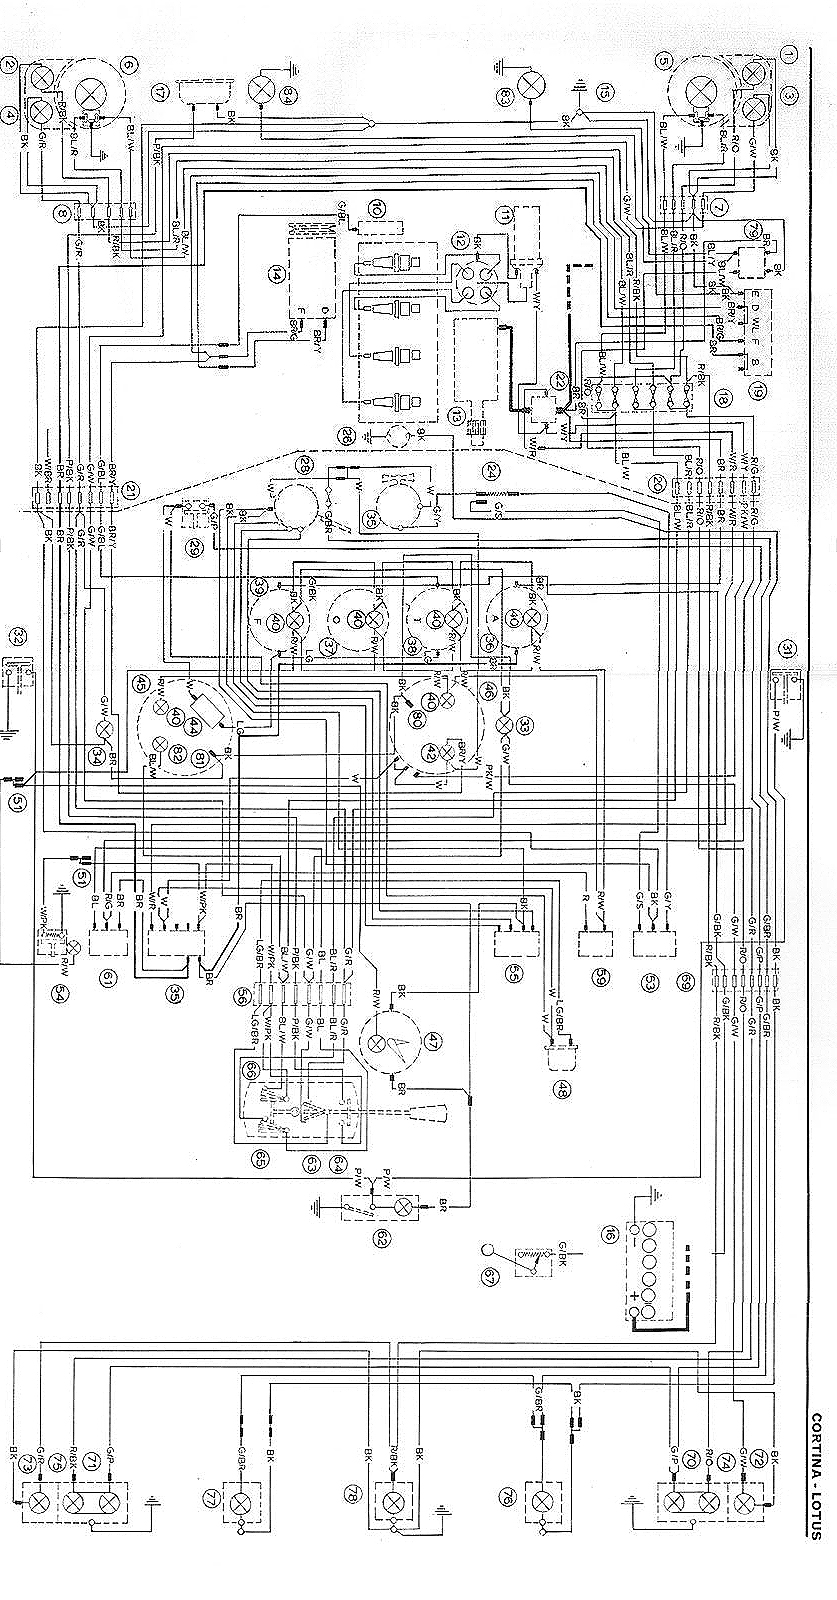 Ford Mk2 Wiring Diagram Data Electrical Diagrams Pdf Lotus Cortina Click For Larger Image